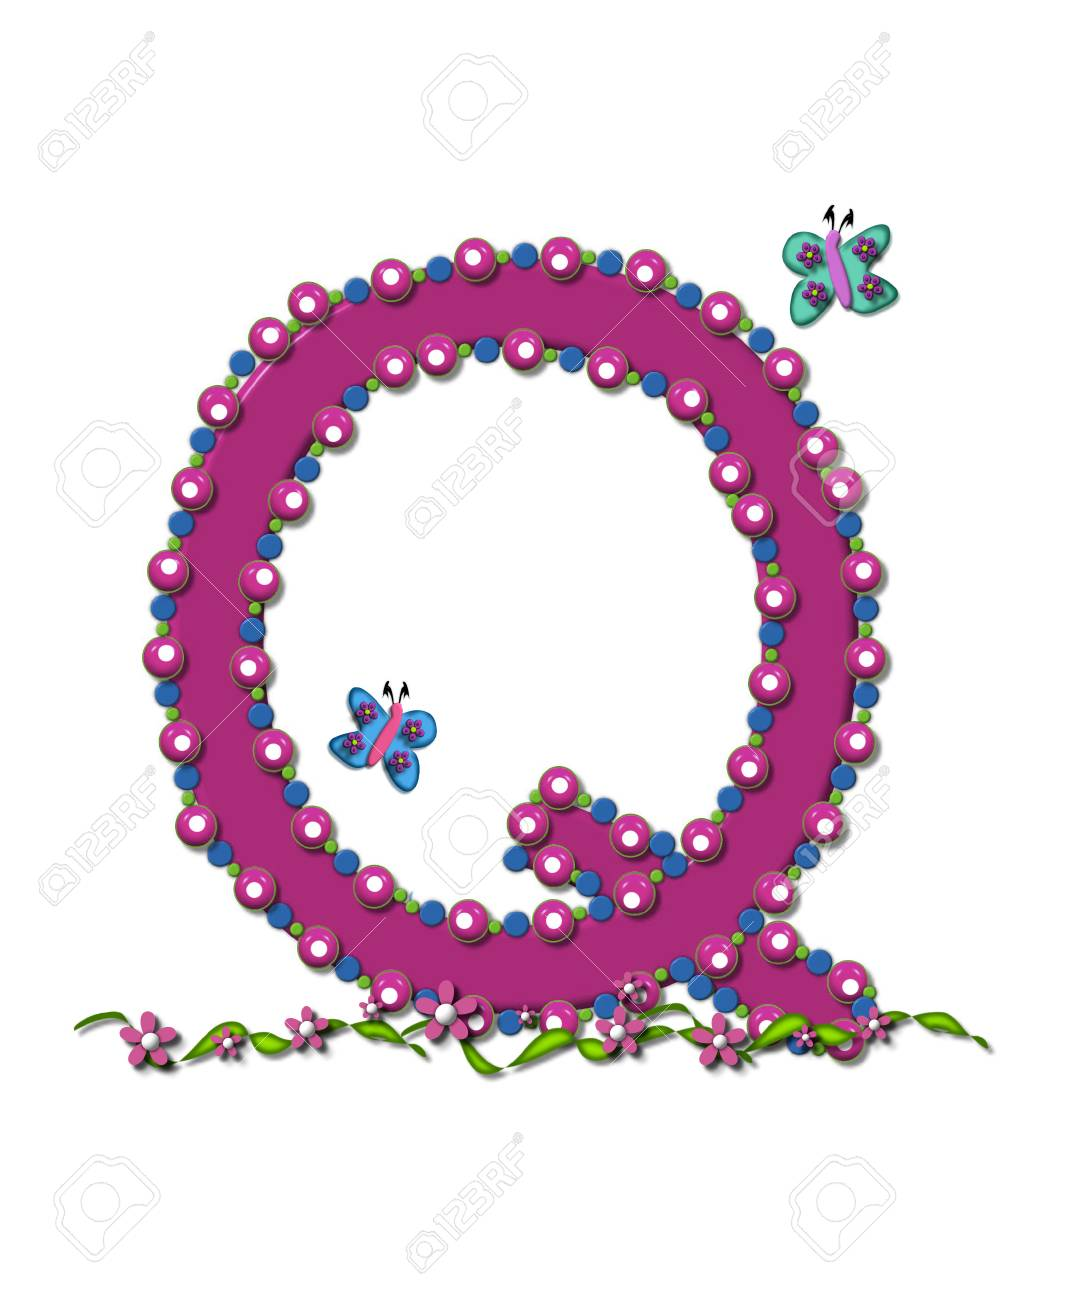 Letter Q From Bead Alphabet Is Deep Rose In Color. Letter Is.. Stock ...